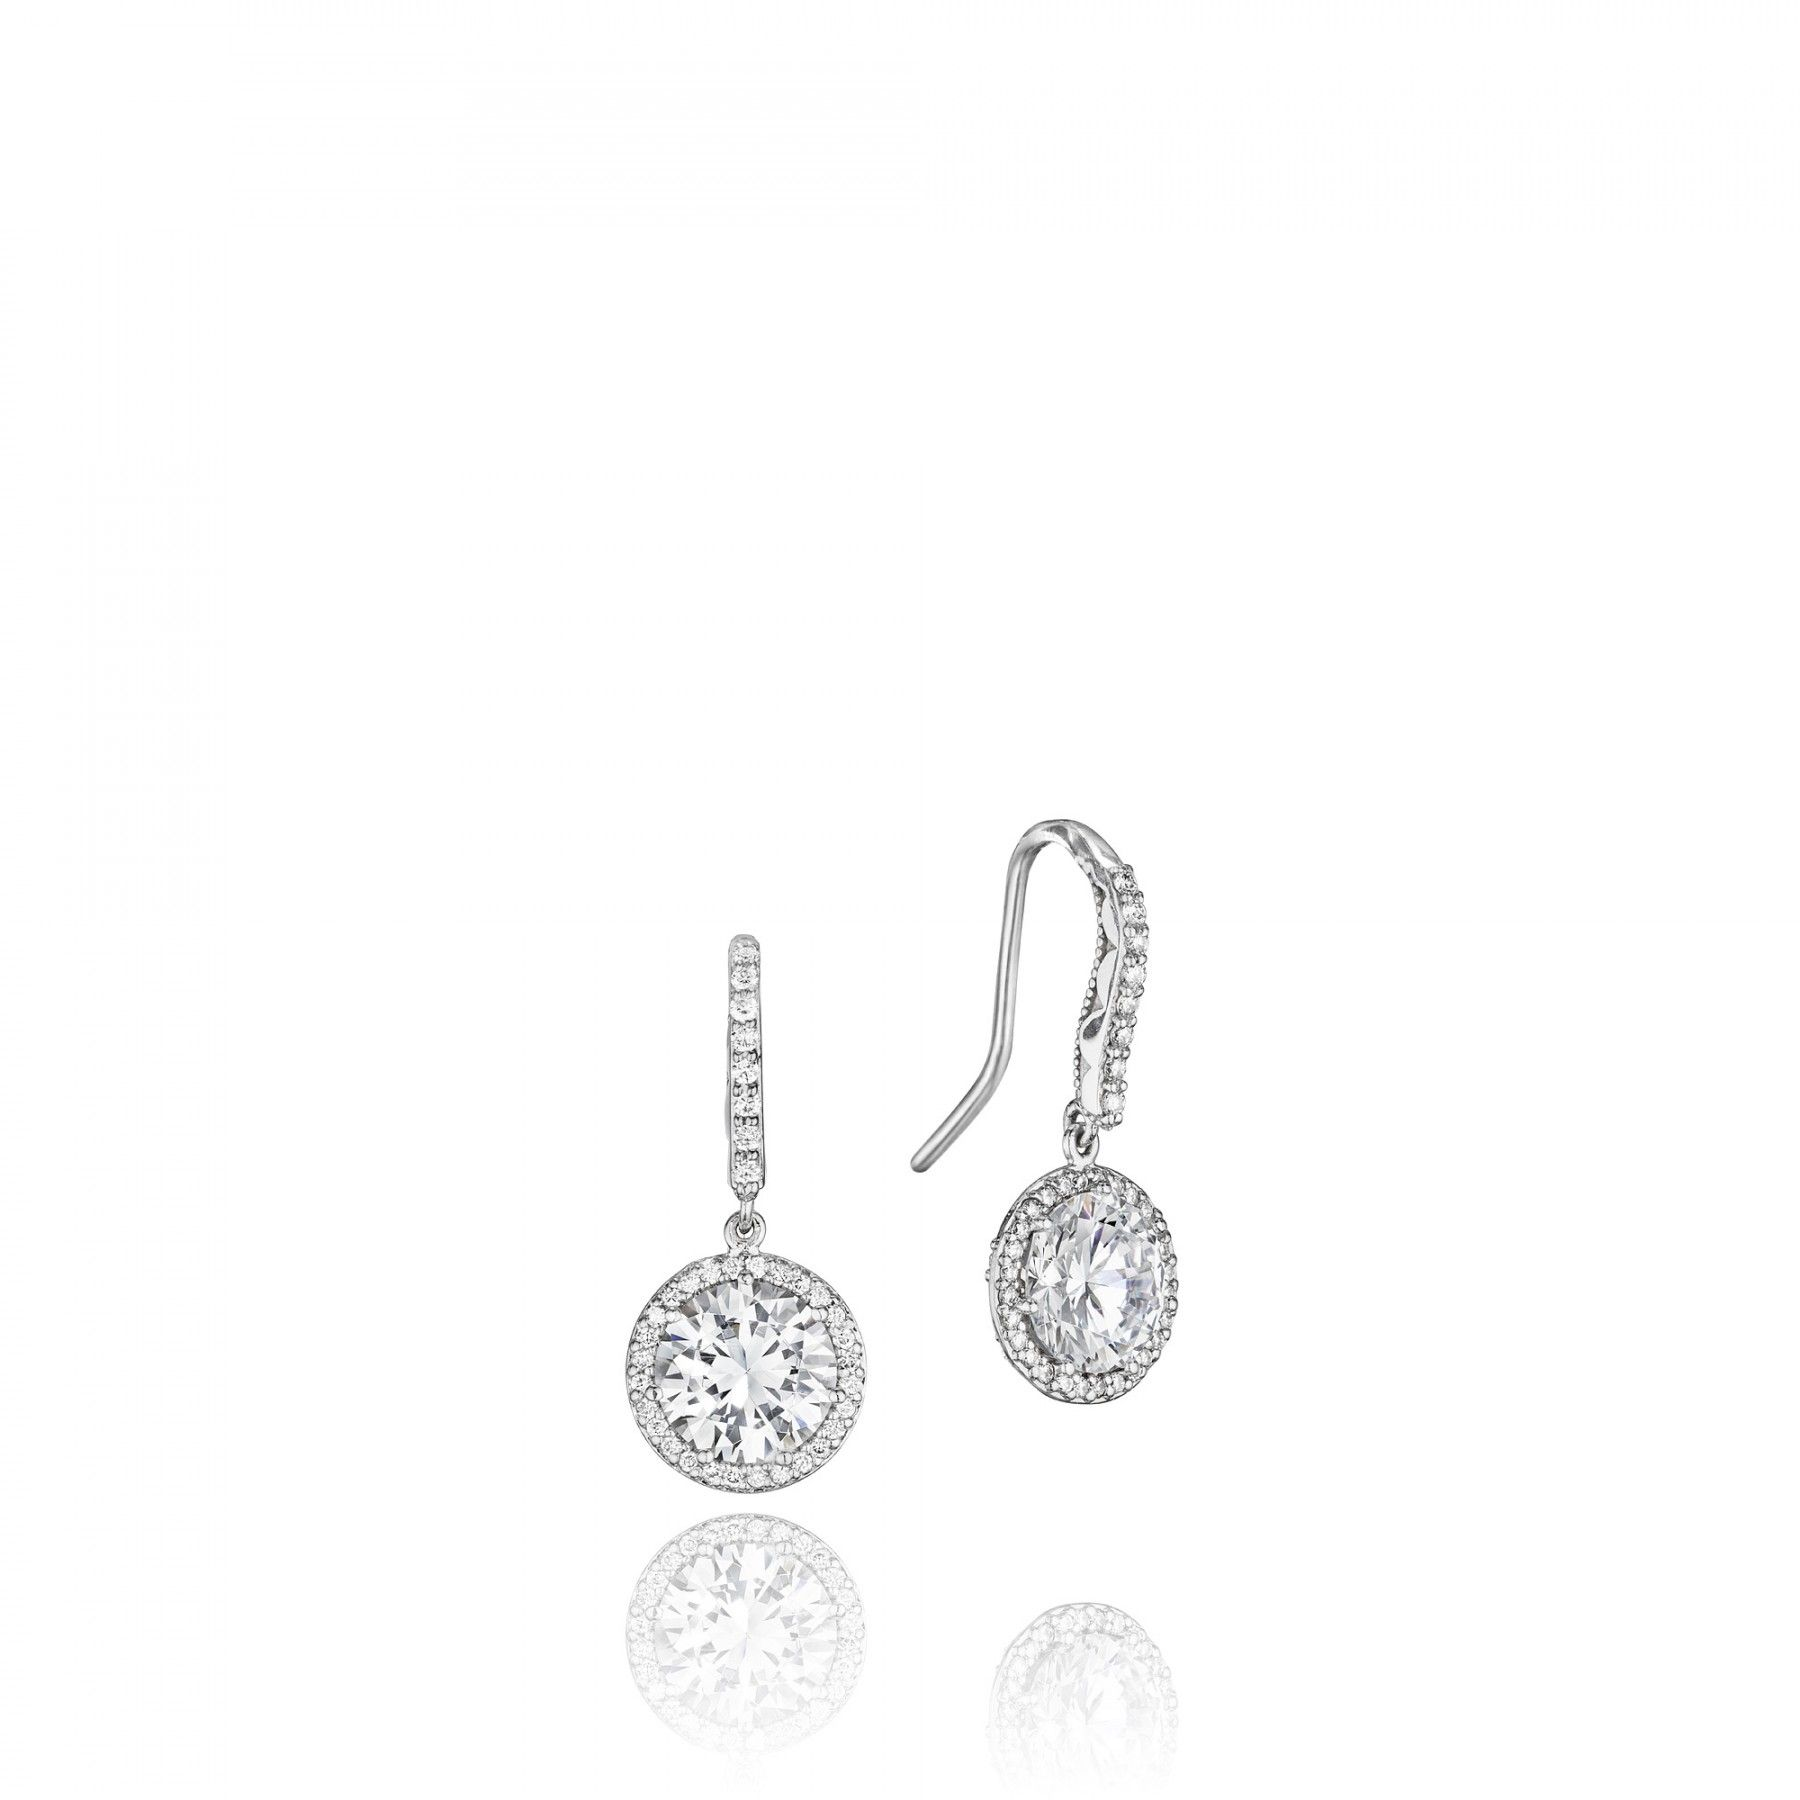 Style FE Dantela Diamond Earrings Jewelry Tacori